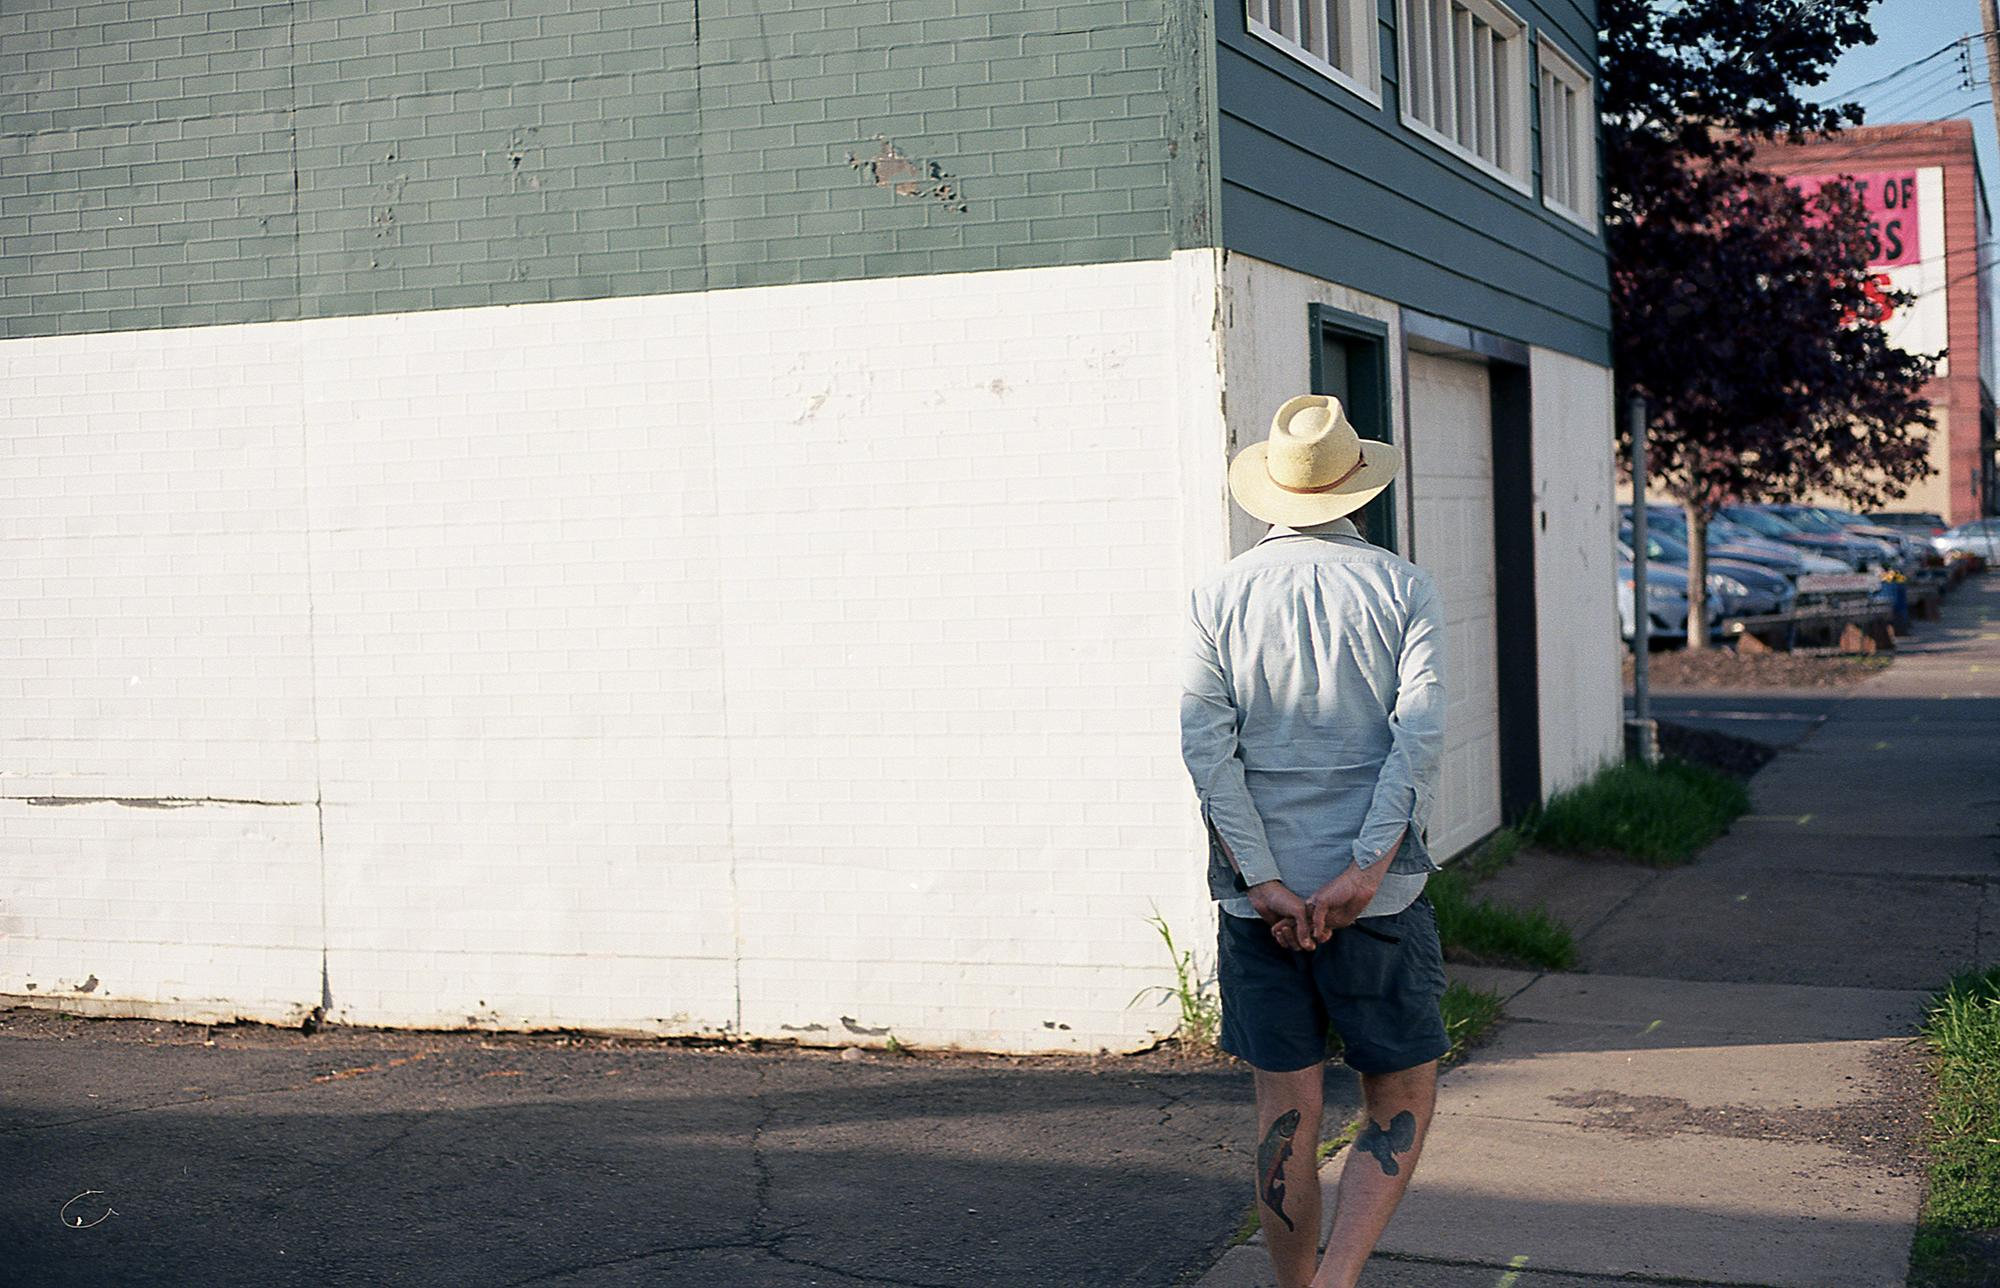 Man in the white hat